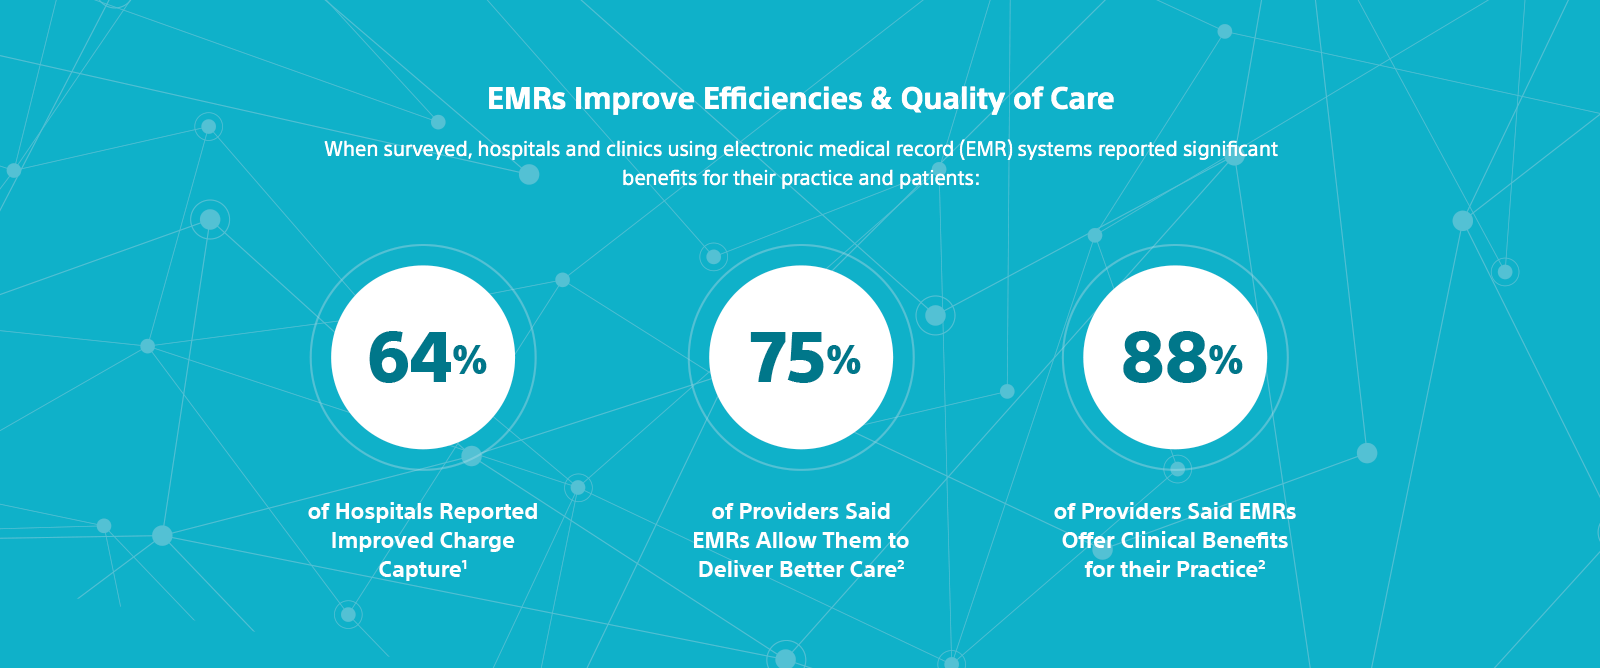 Graphics showing 64% of hospitals surveyed reported improved charge capture, 75% of providers surveyed said EMRs allow them to deliver better care, 88% of providers said EMRs offer clinical benefits for their practice.